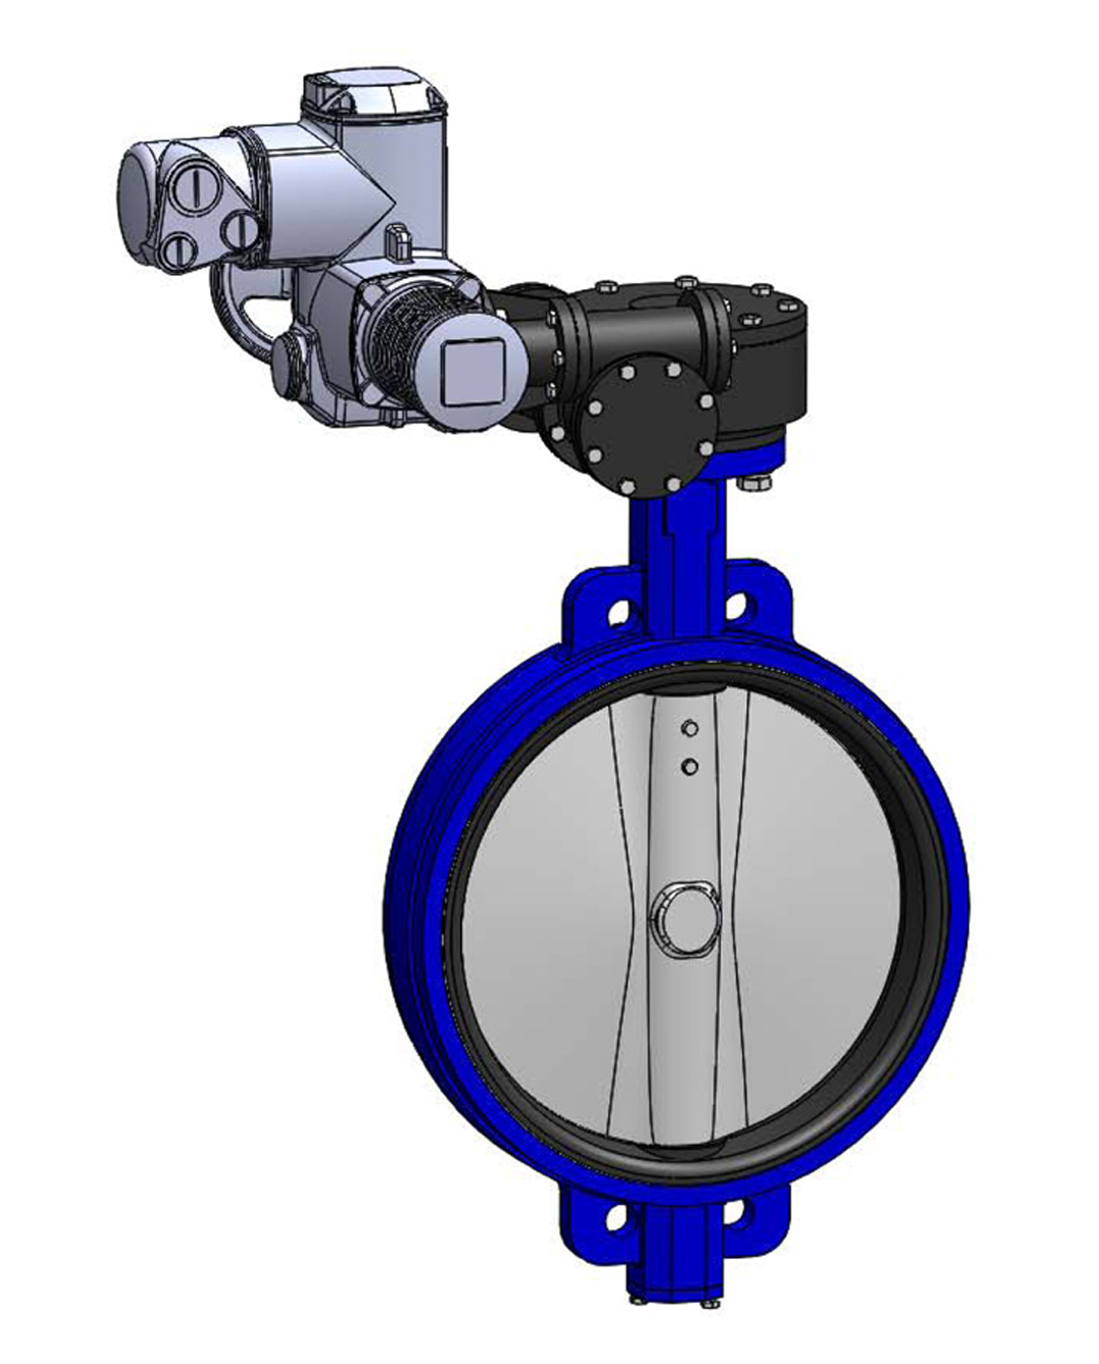 Wafer type butterfly valve PN16 – ductile iron body – stainless steel disc – AUMA electric operator